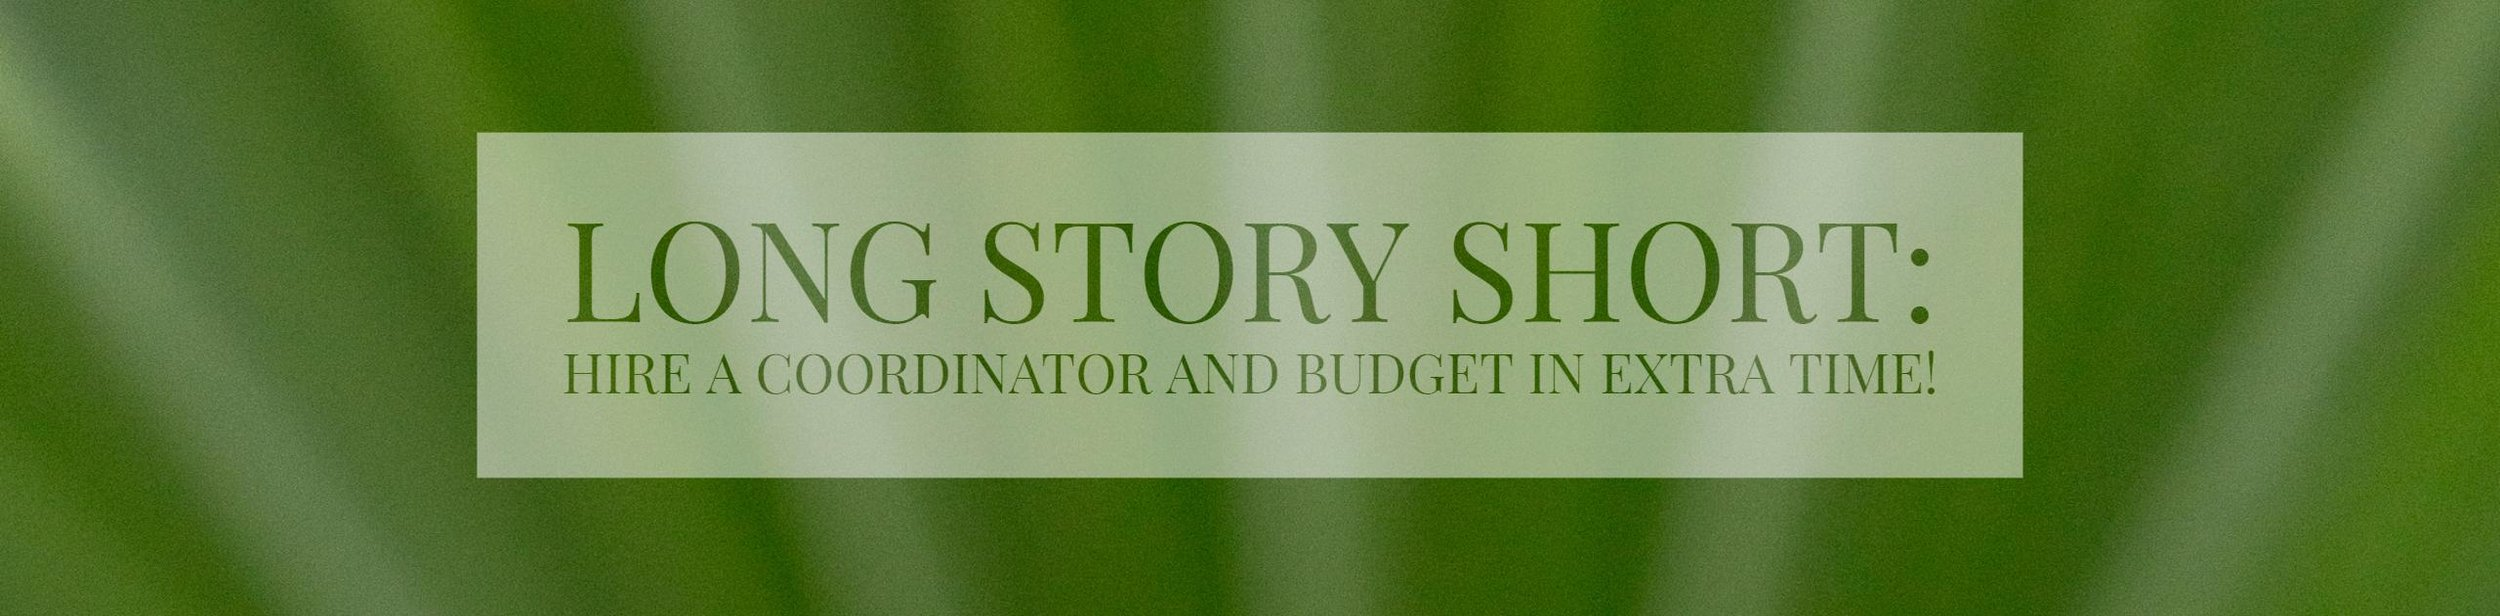 Long Story Short: Hire a coordinator and budget in extra time!